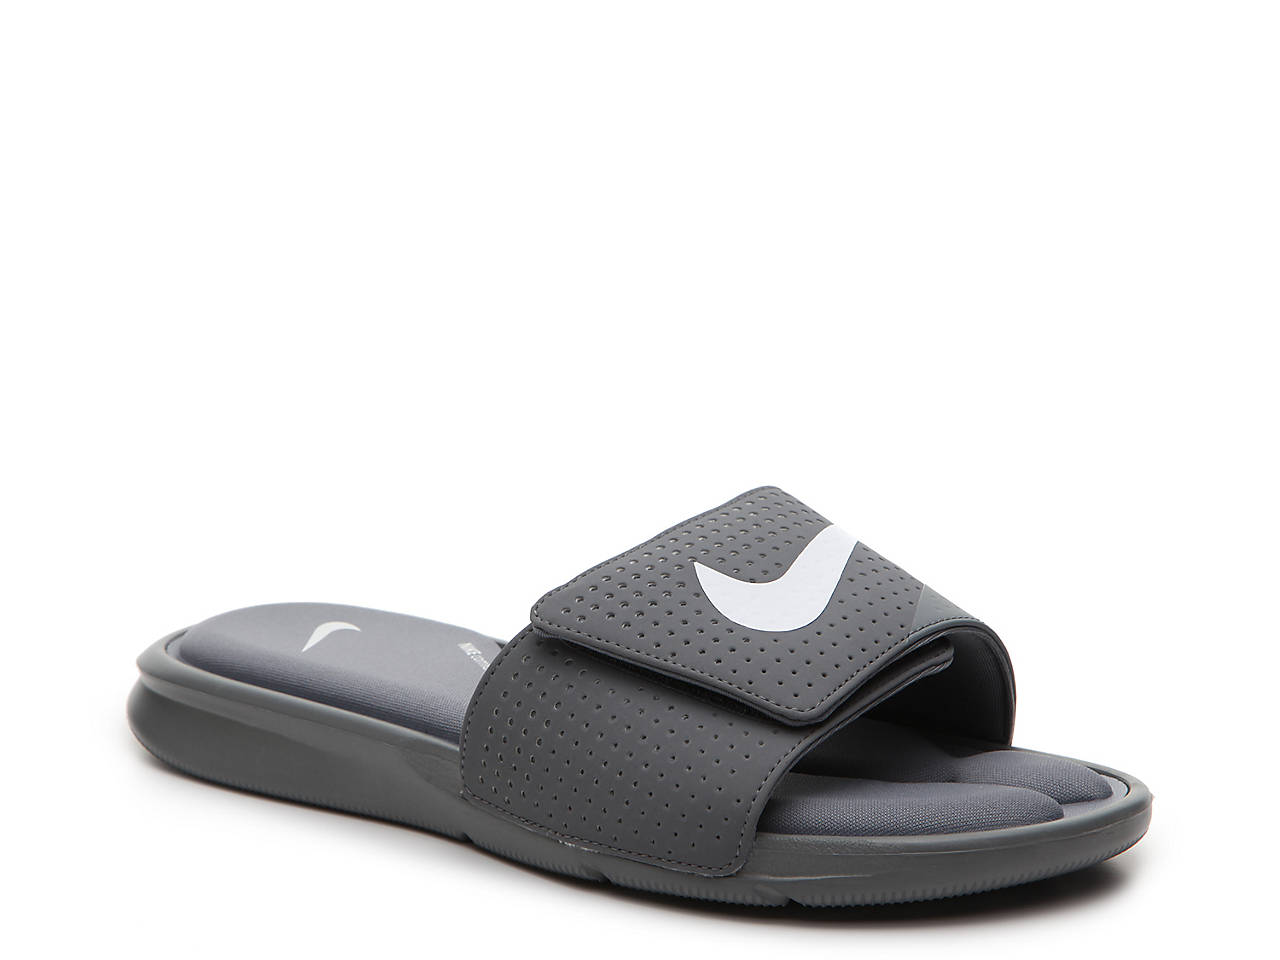 Nike Ultra Comfort Slide Sandal Men S Men S Shoes Dsw